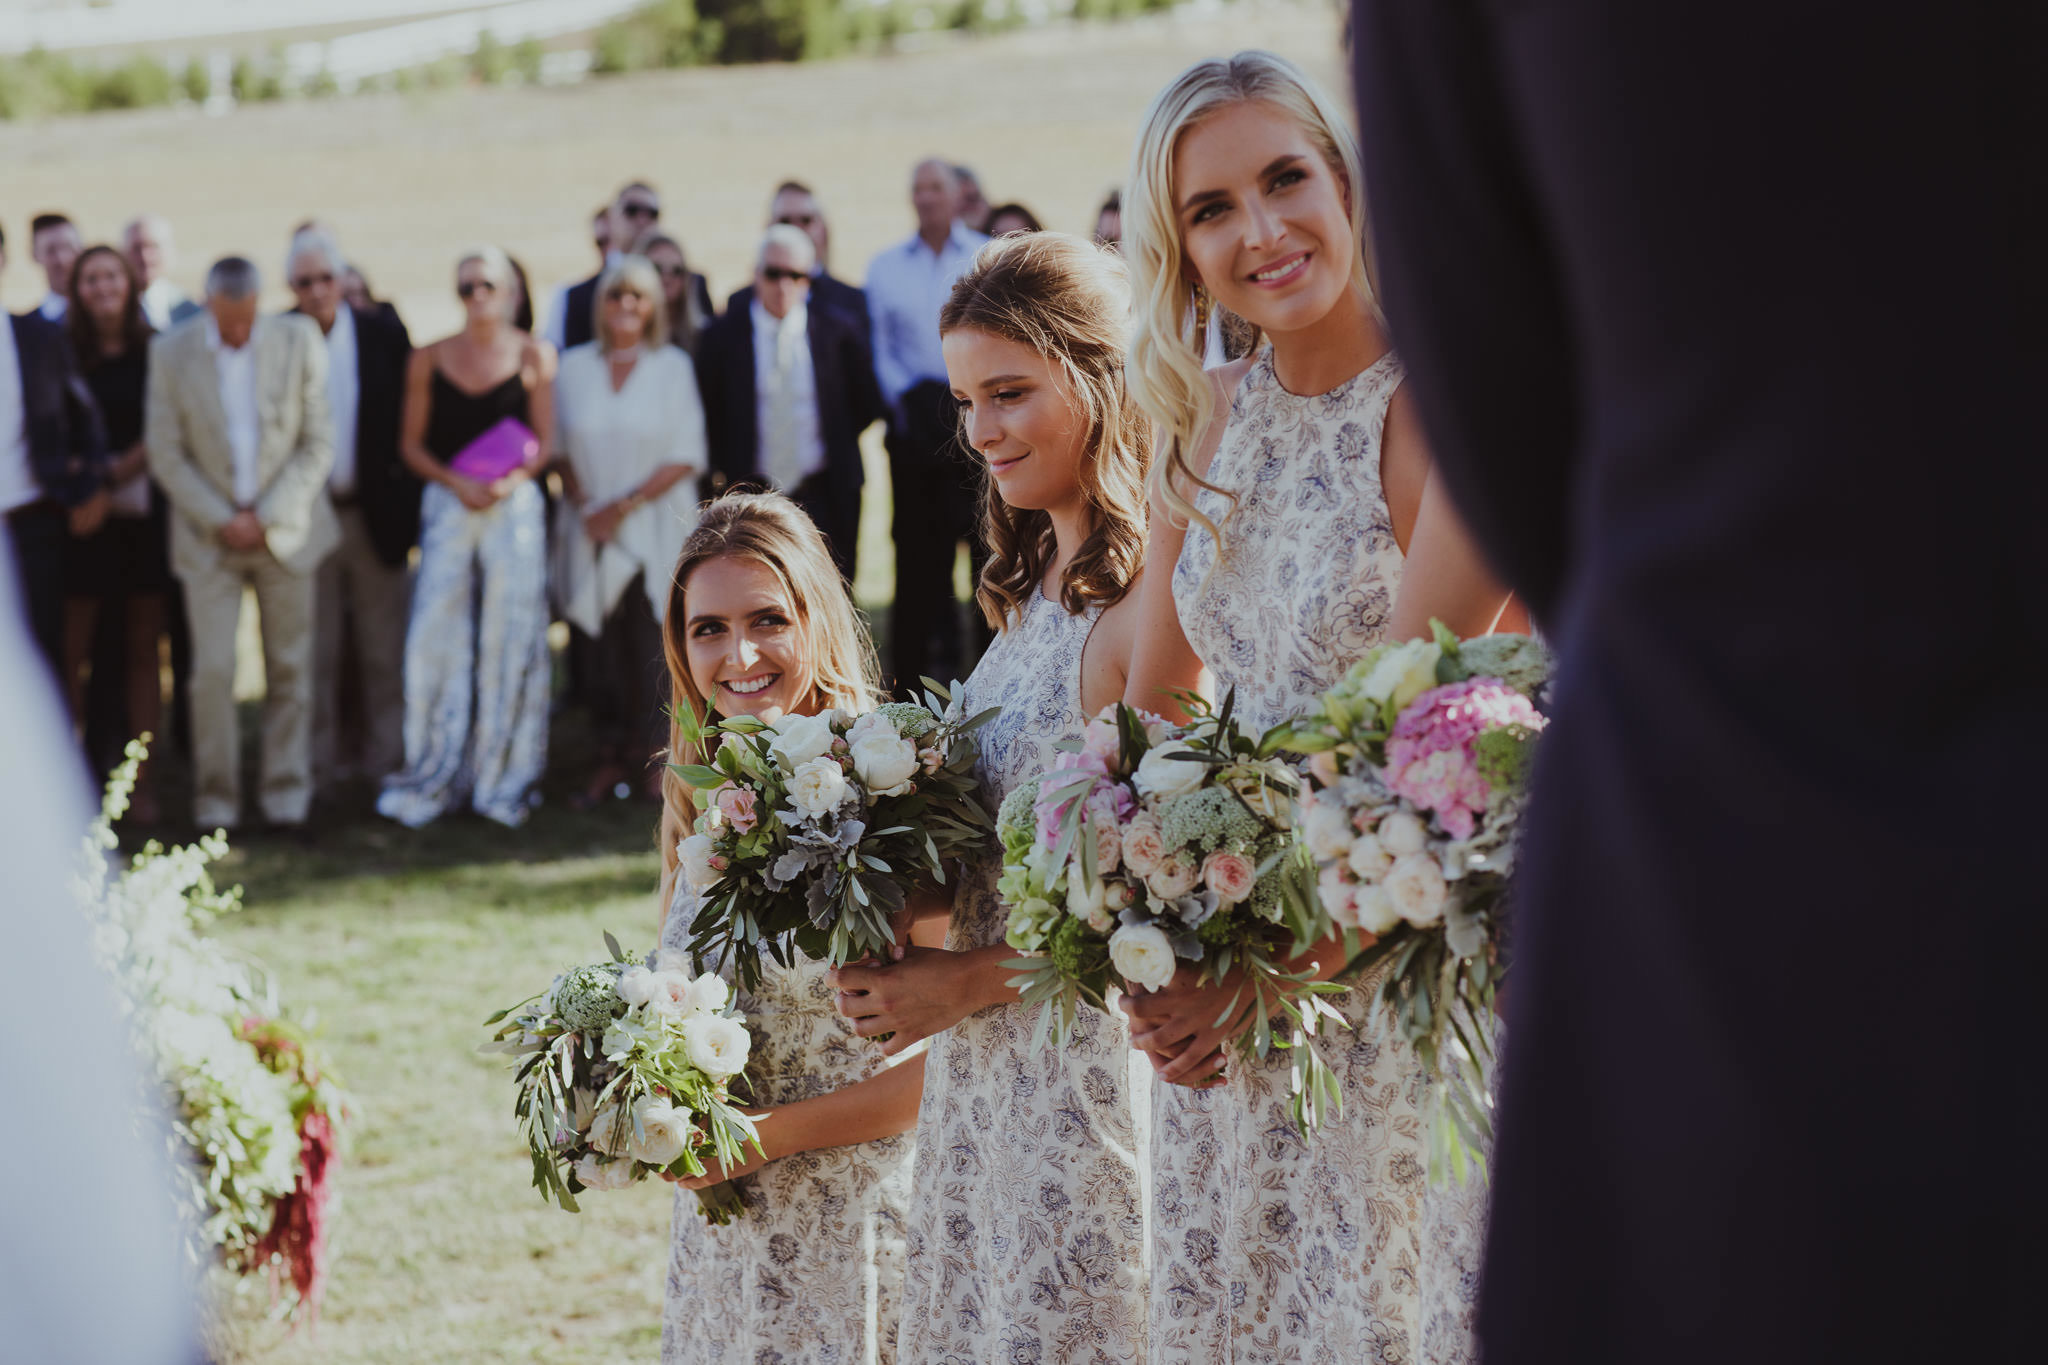 20180310_Wedding-Family-Event-Wollongong-SouthCoast-Photographer_BearHuntPhotography_693.jpg